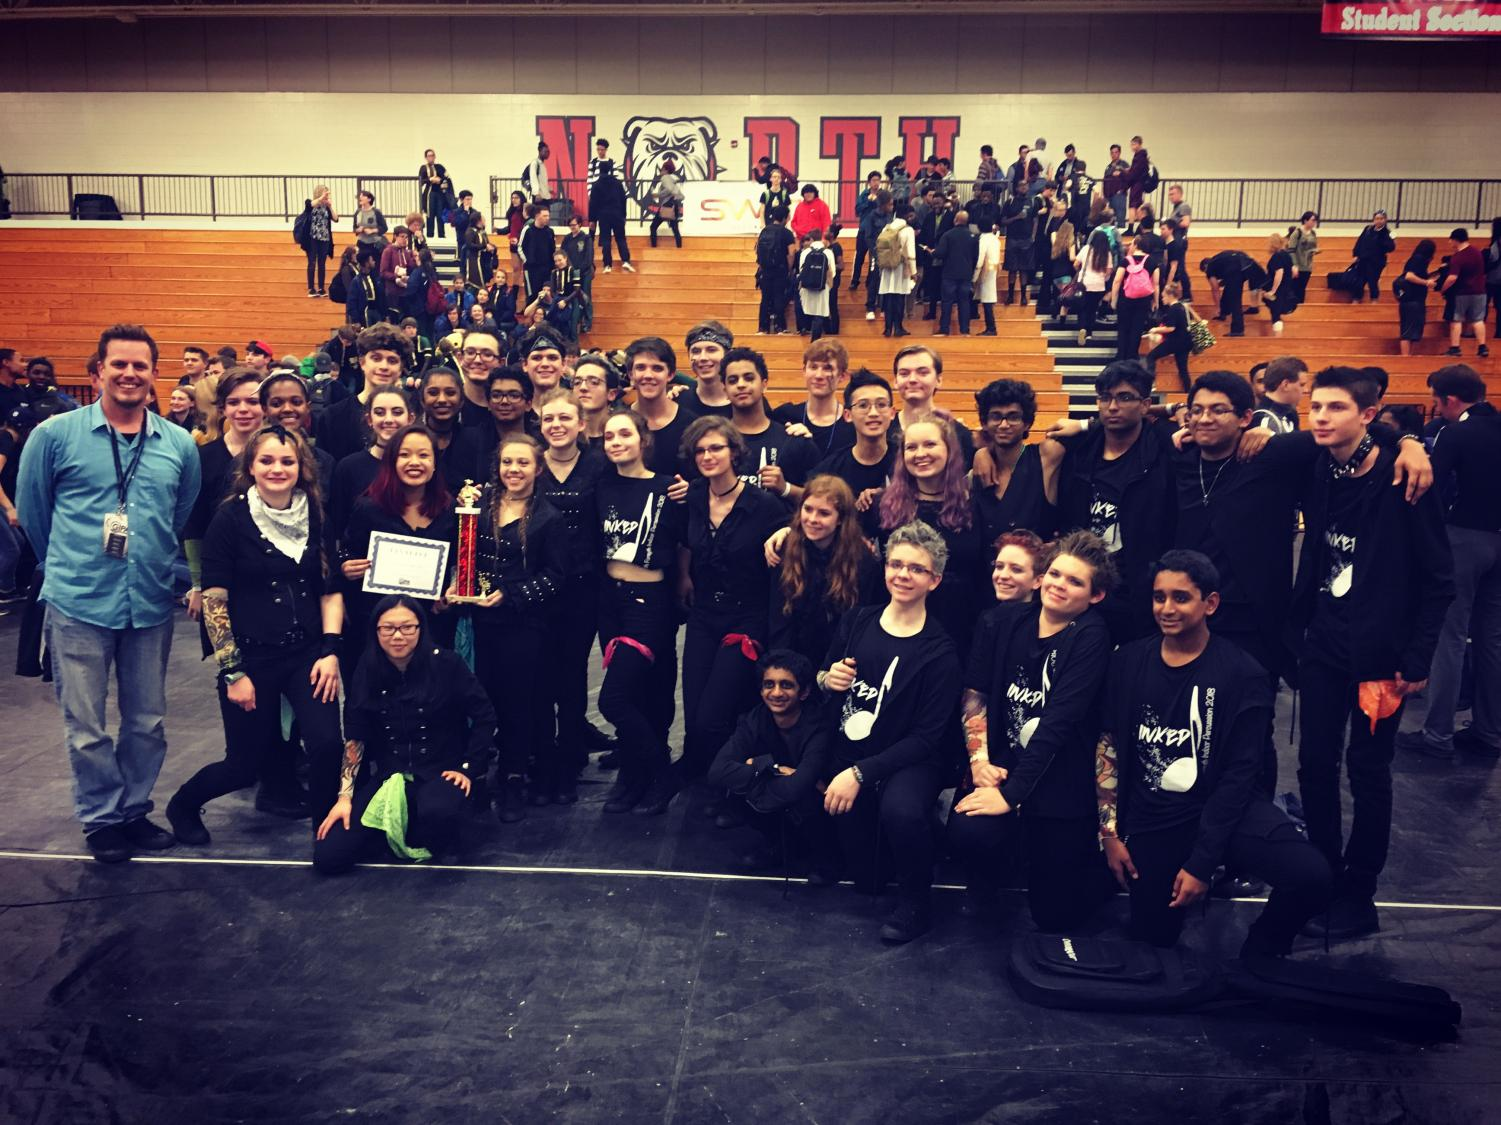 February 17, 2018 - The South Forsyth Indoor Percussion team gathered for a picture after winning 1st place at the Georgia Indoor Percussion Association (GIPA) competition. Photo used with the permission of Stephen Hendricks and Dixon Pendergrass.